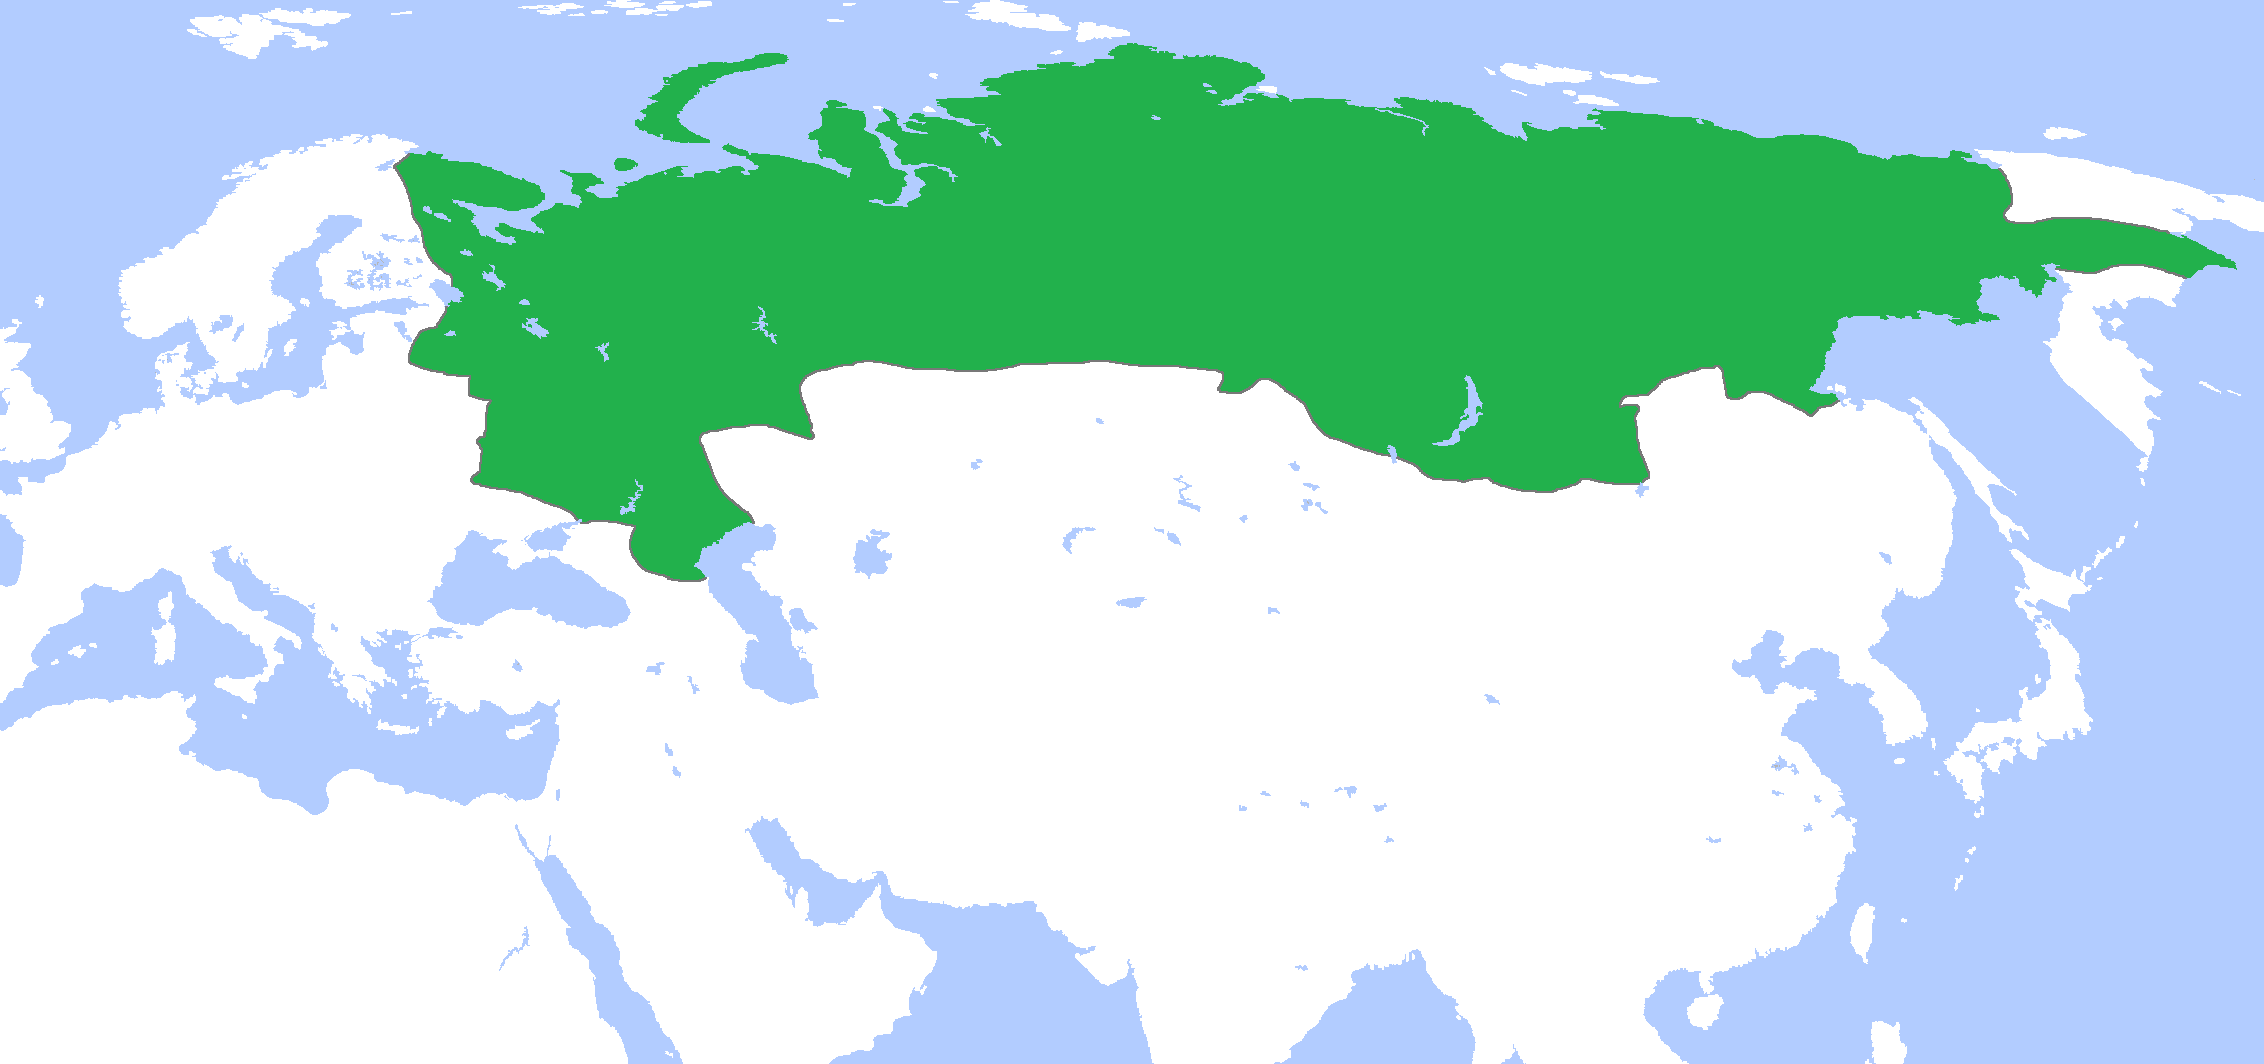 RussianEmpire1700.png